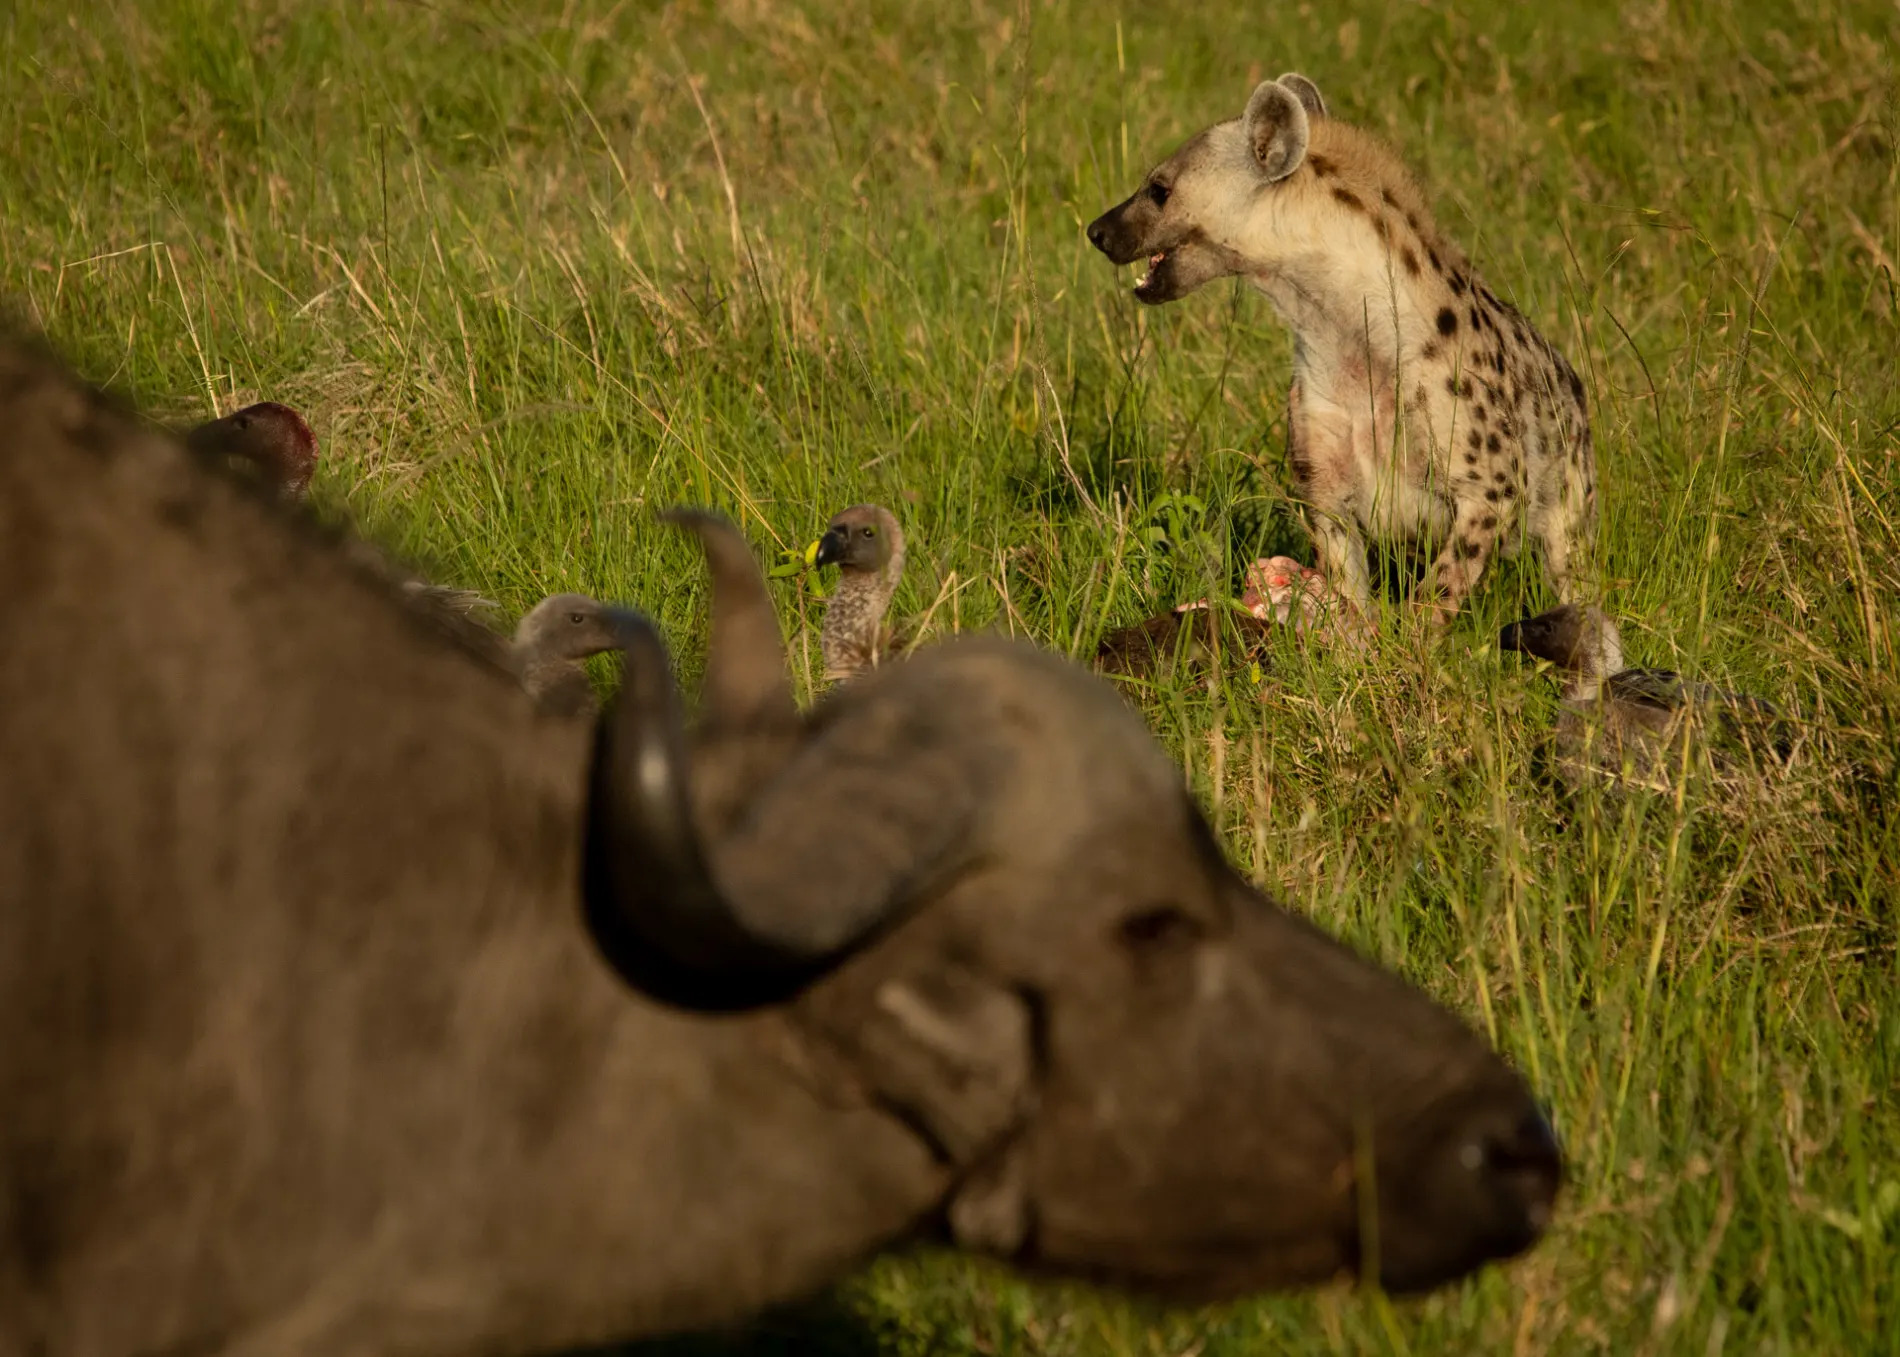 Buffalo and hyena